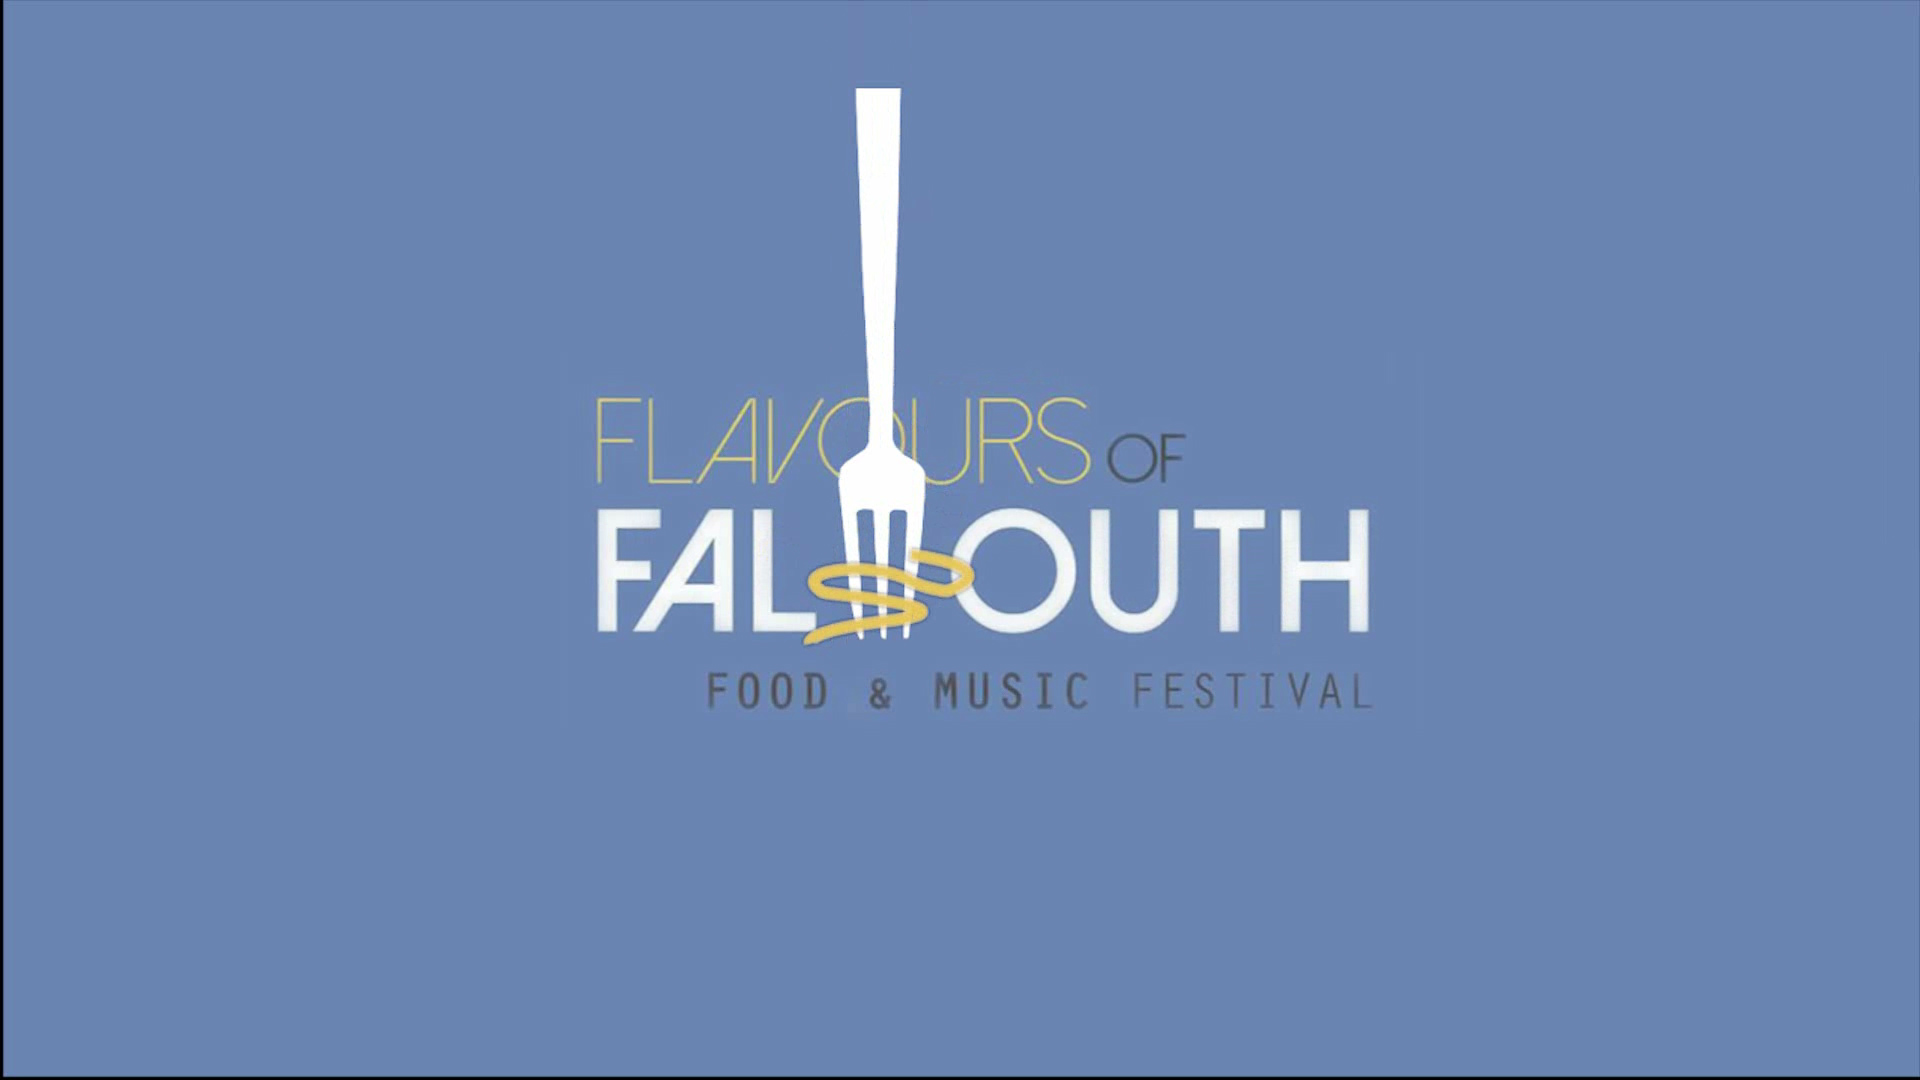 'Flavours of Falmouth 2019' showcases local businesses